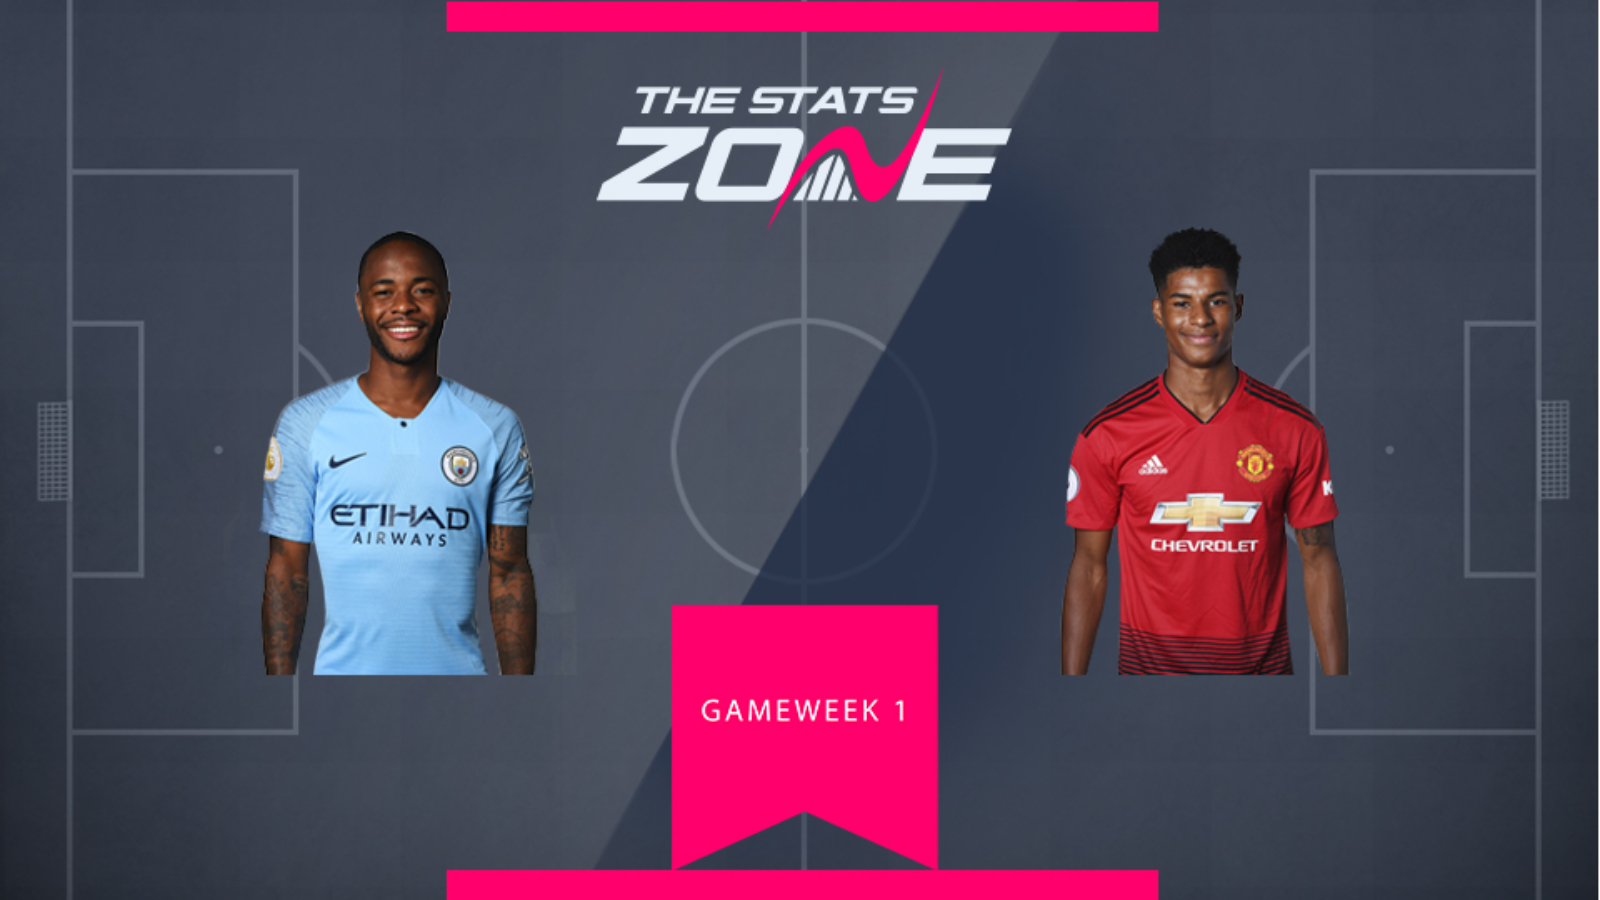 Fpl Season Comparisons Head To Head Raheem Sterling Vs Marcus Rashford The Stats Zone